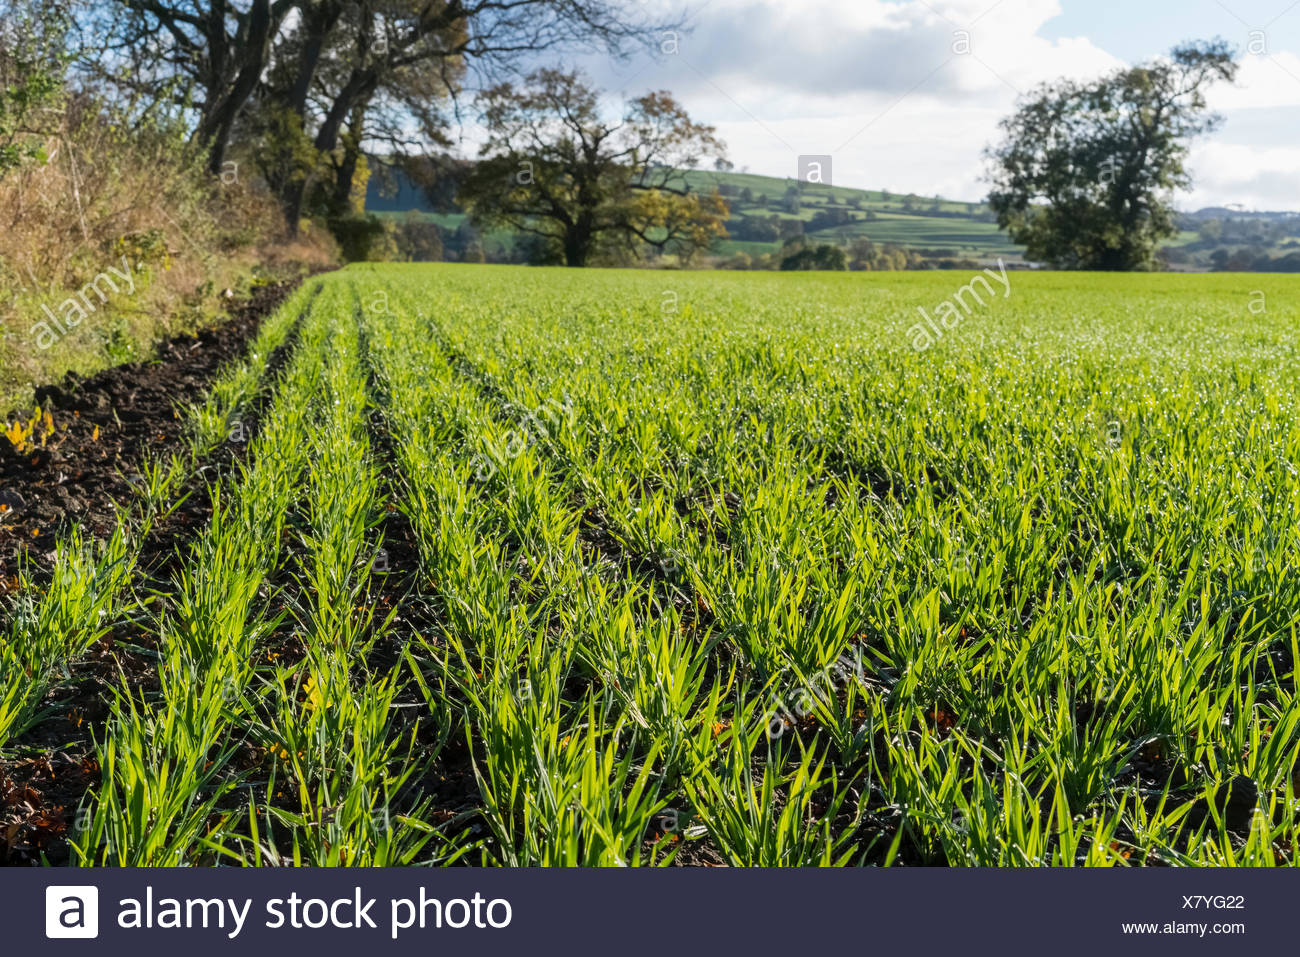 Plants at an early growing stage in a field; Yorkshire, England - Stock Image